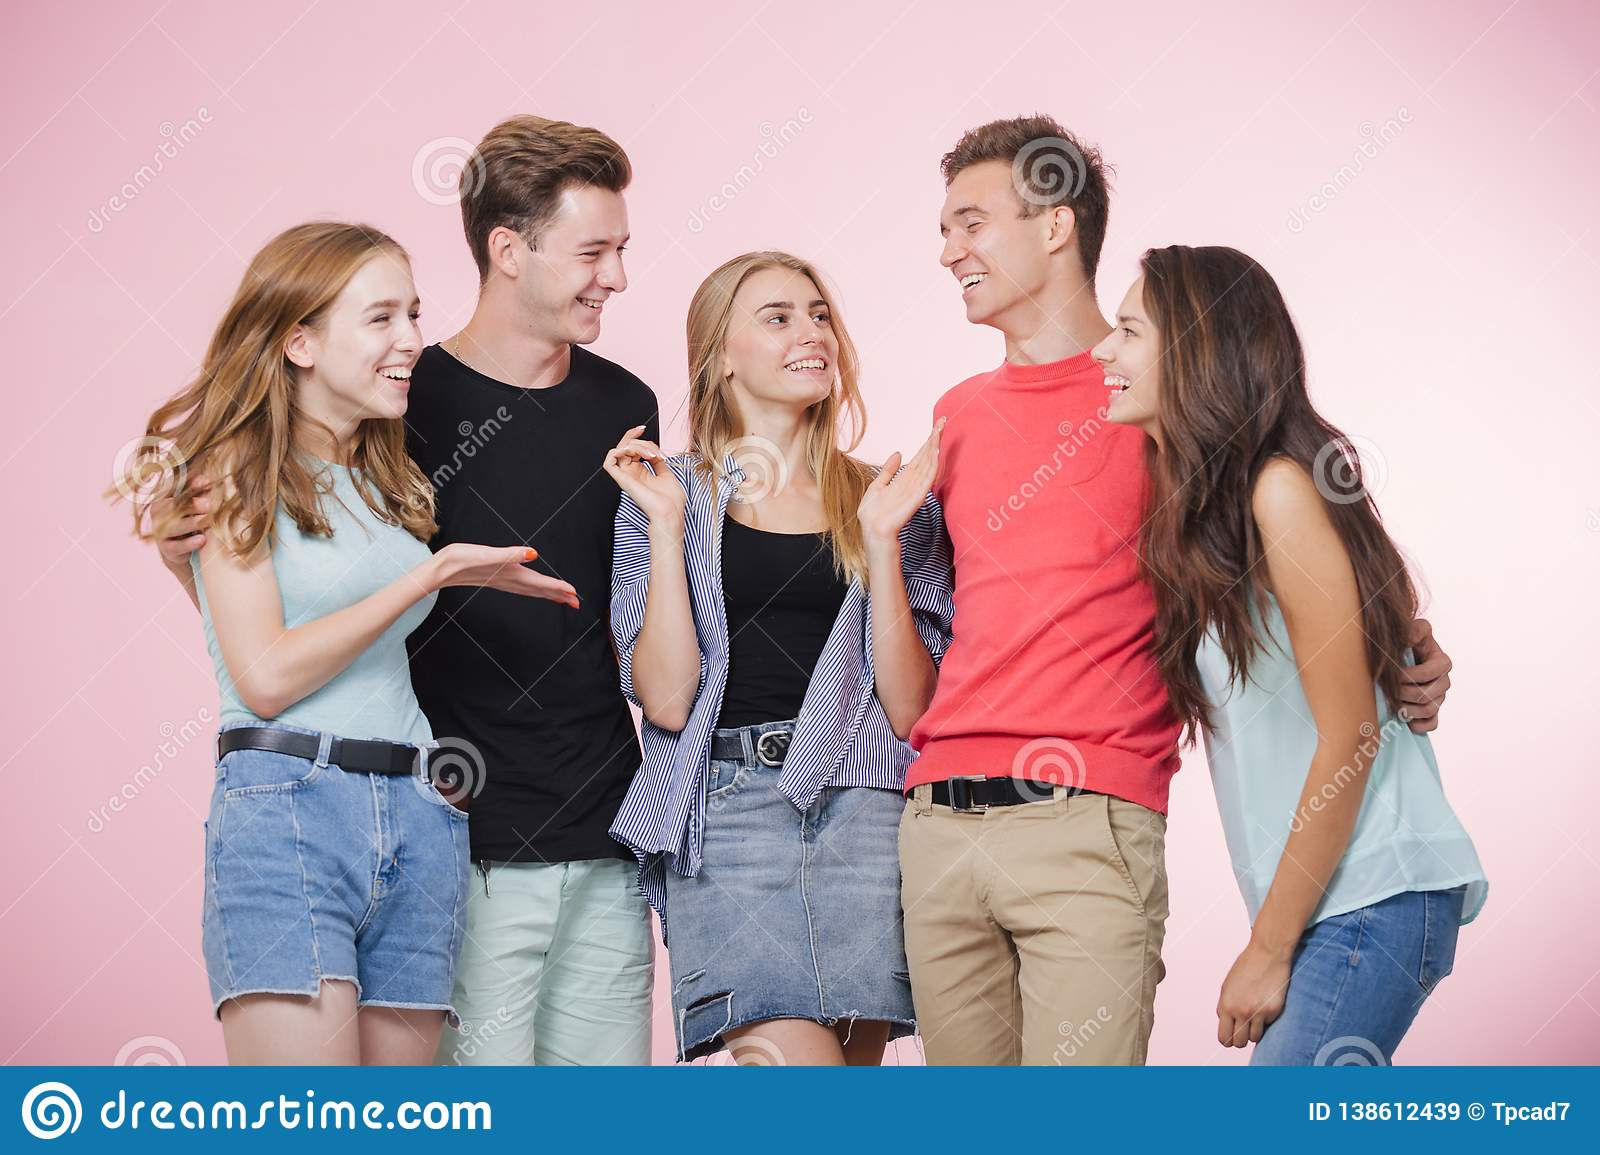 Happy smiling young group of friends standing together talking and laughing. Best friends